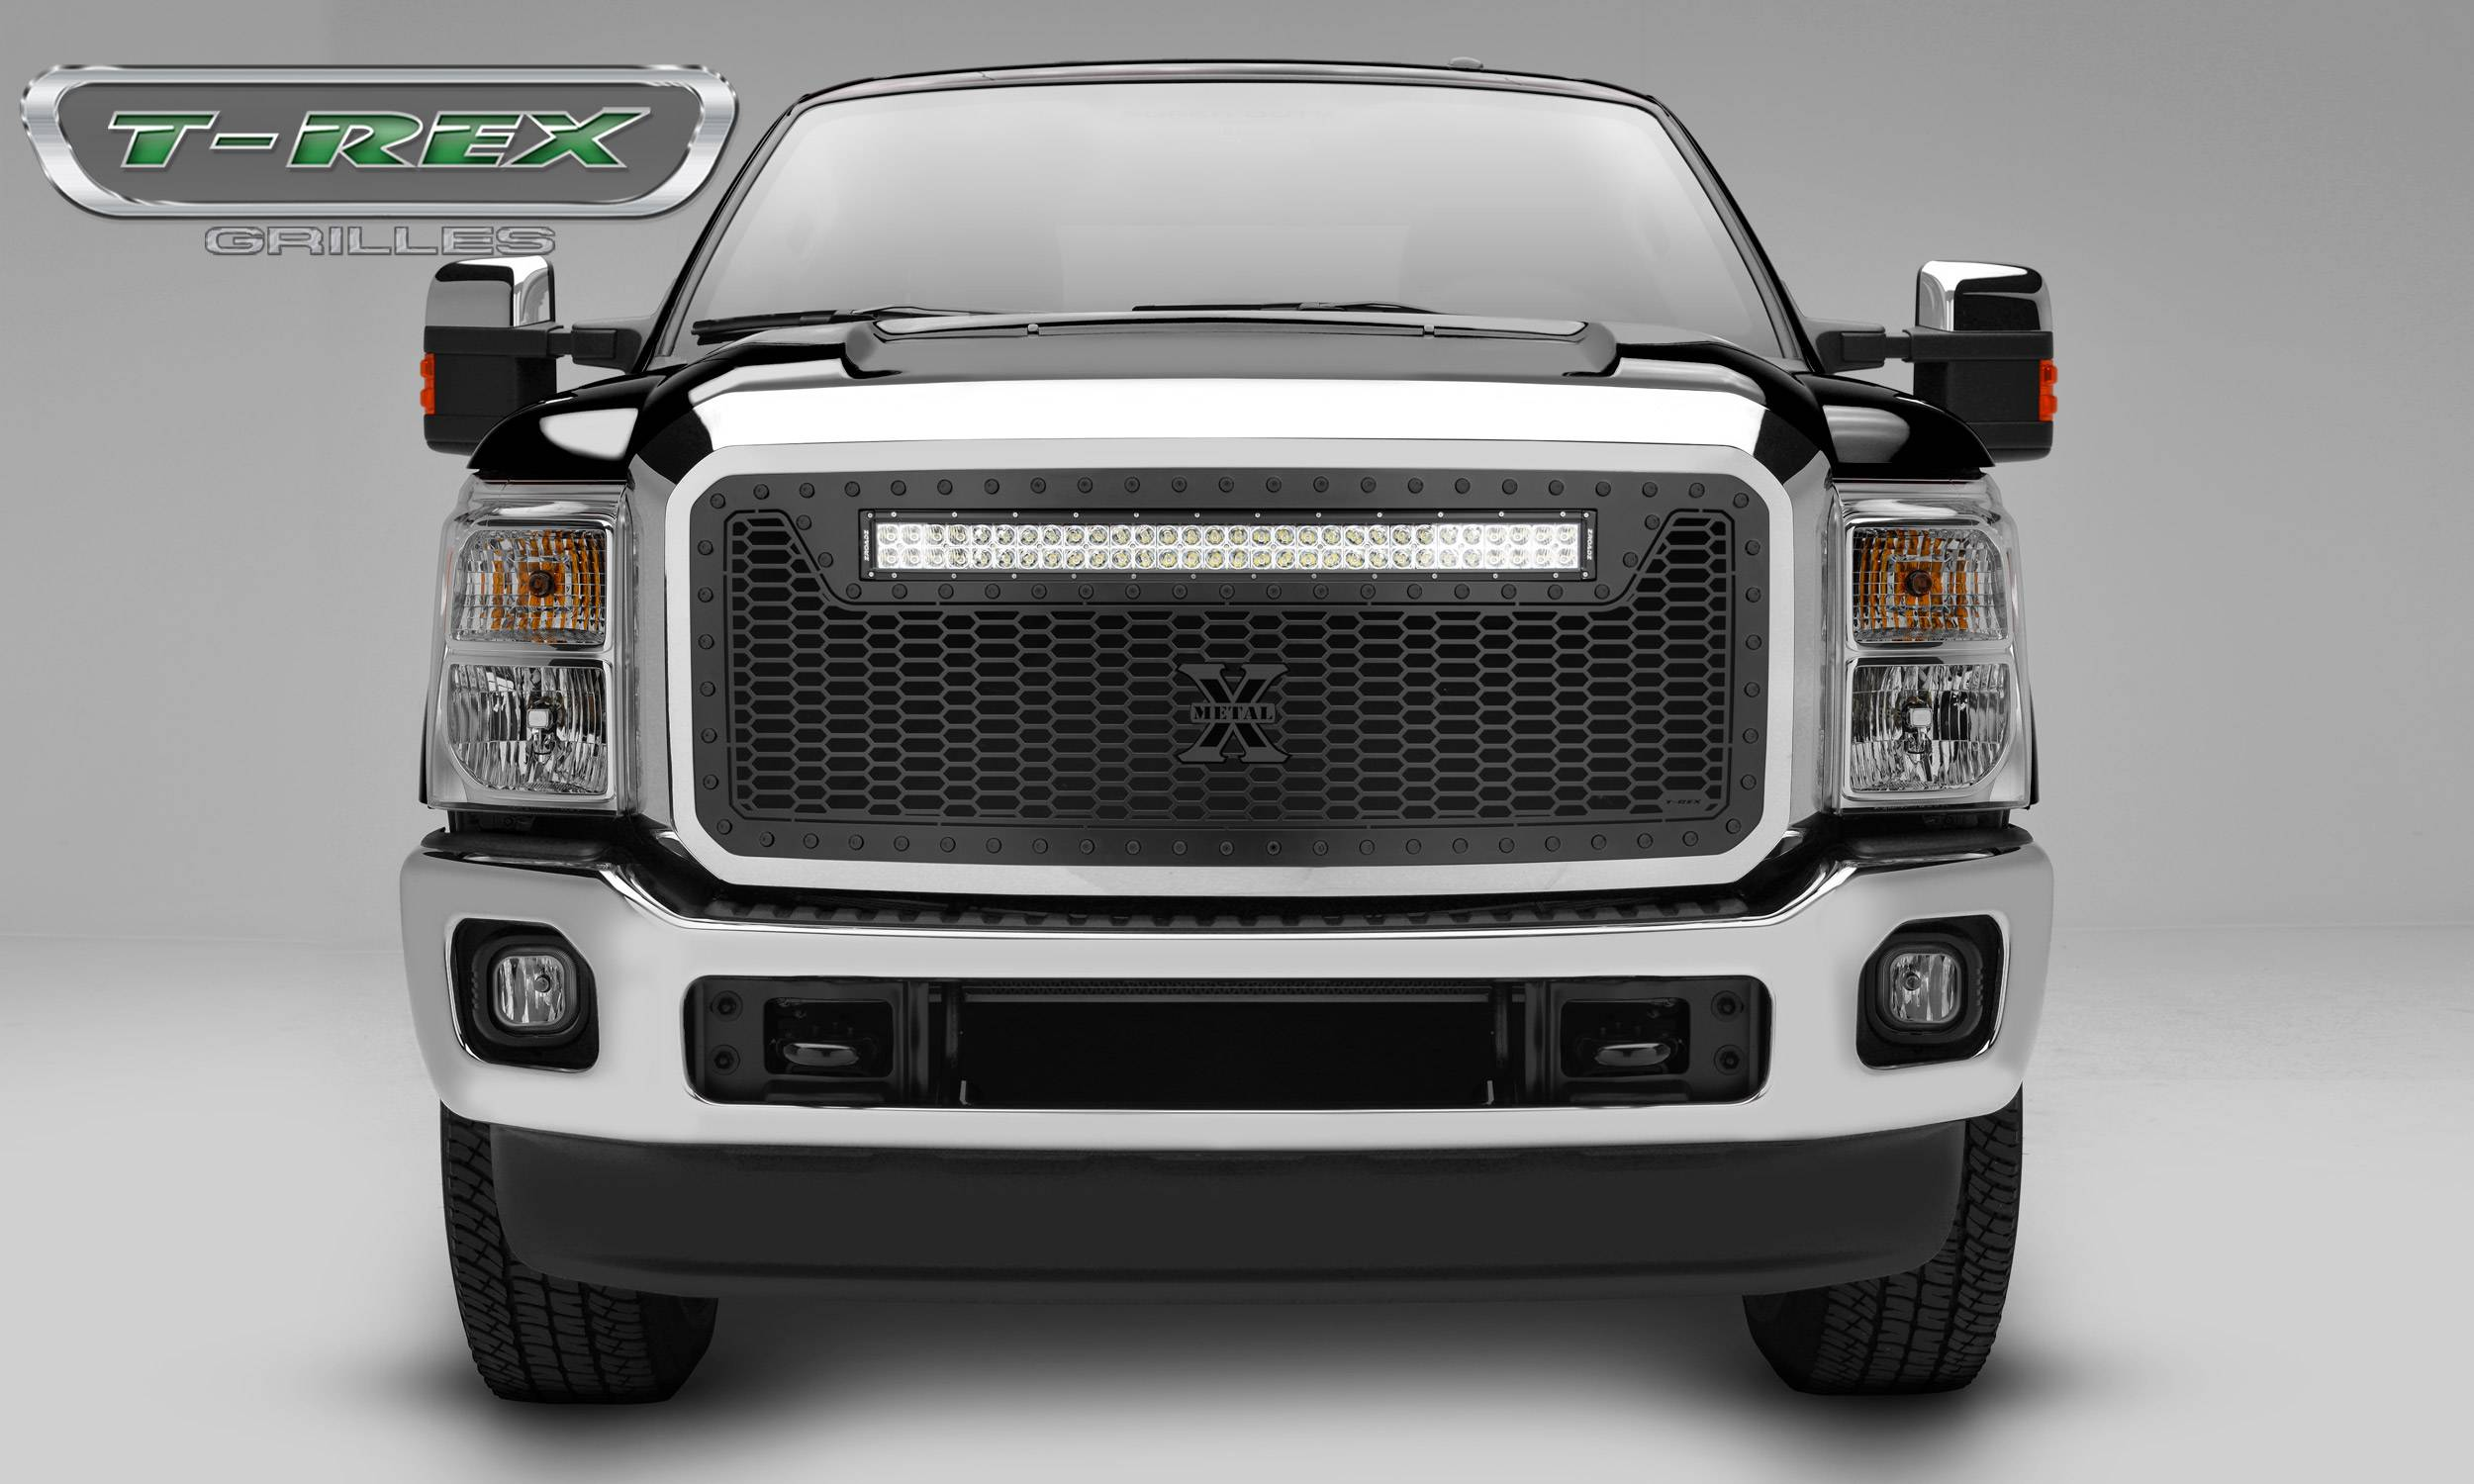 T-REX Grilles - 2011-2016 Ford Super Duty Stealth Laser Torch Grille, Black, Mild Steel, 1 Pc, Insert -#7315461-BR